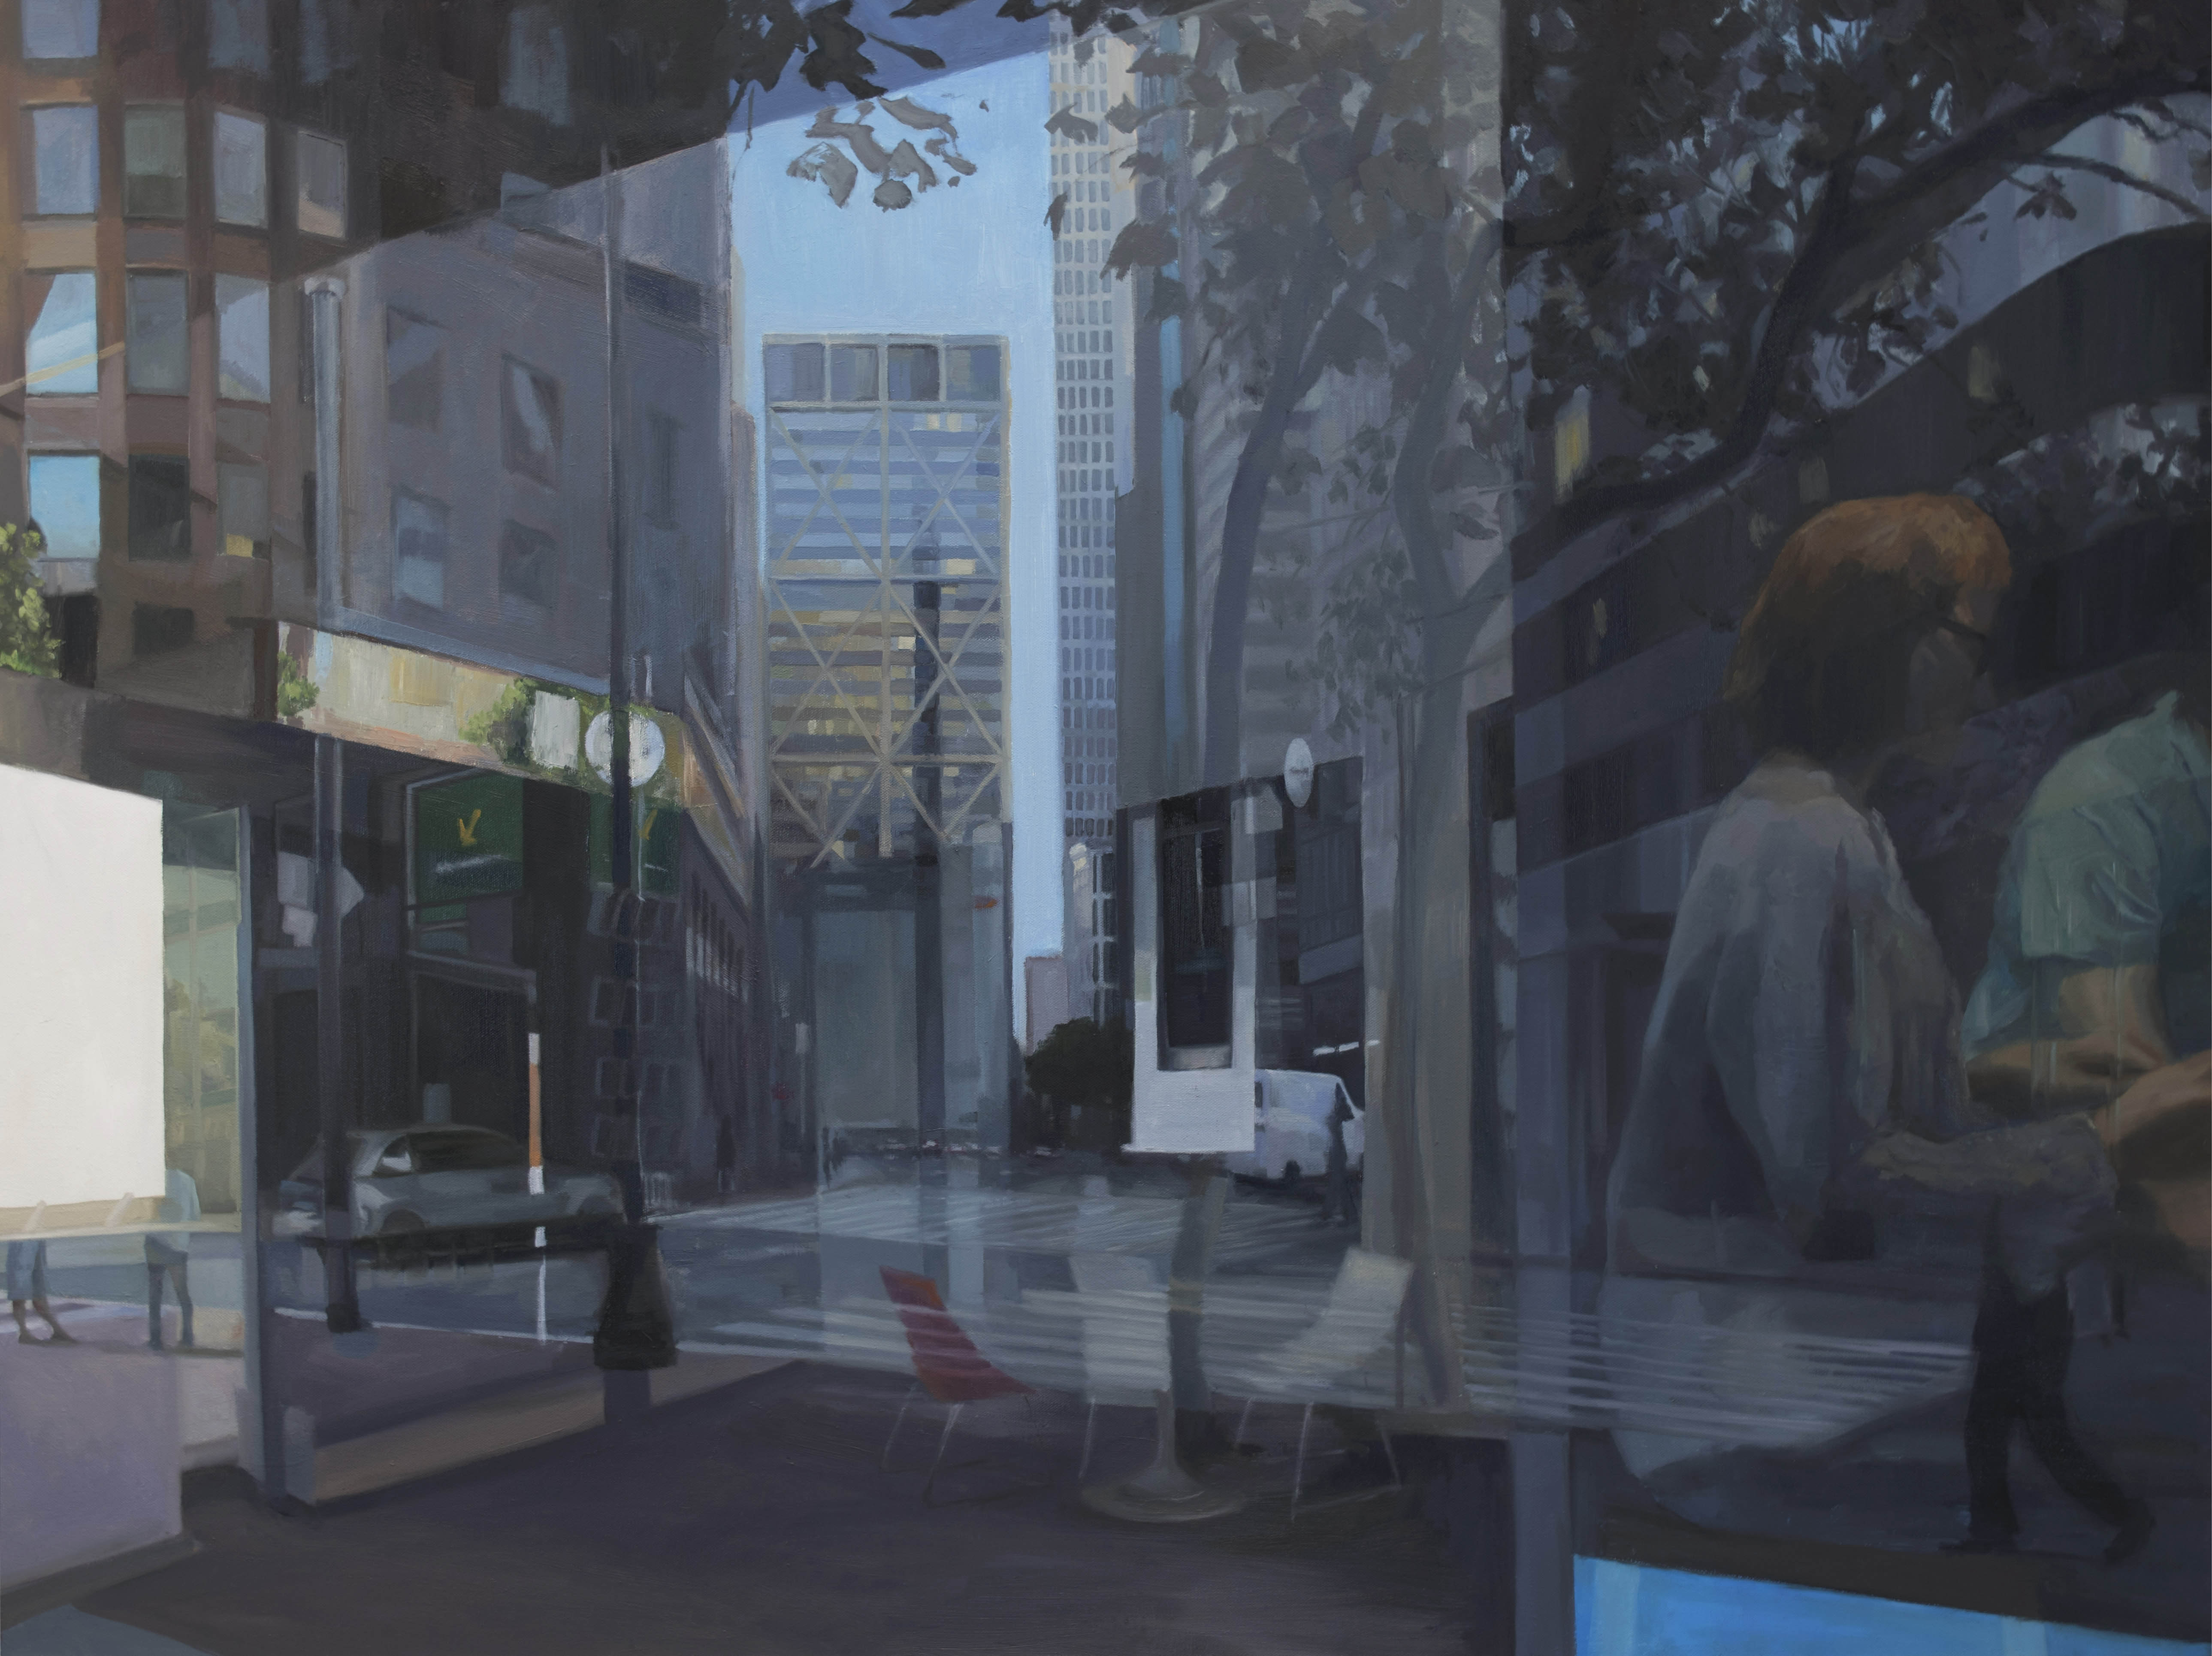 Reflections of City Buildings